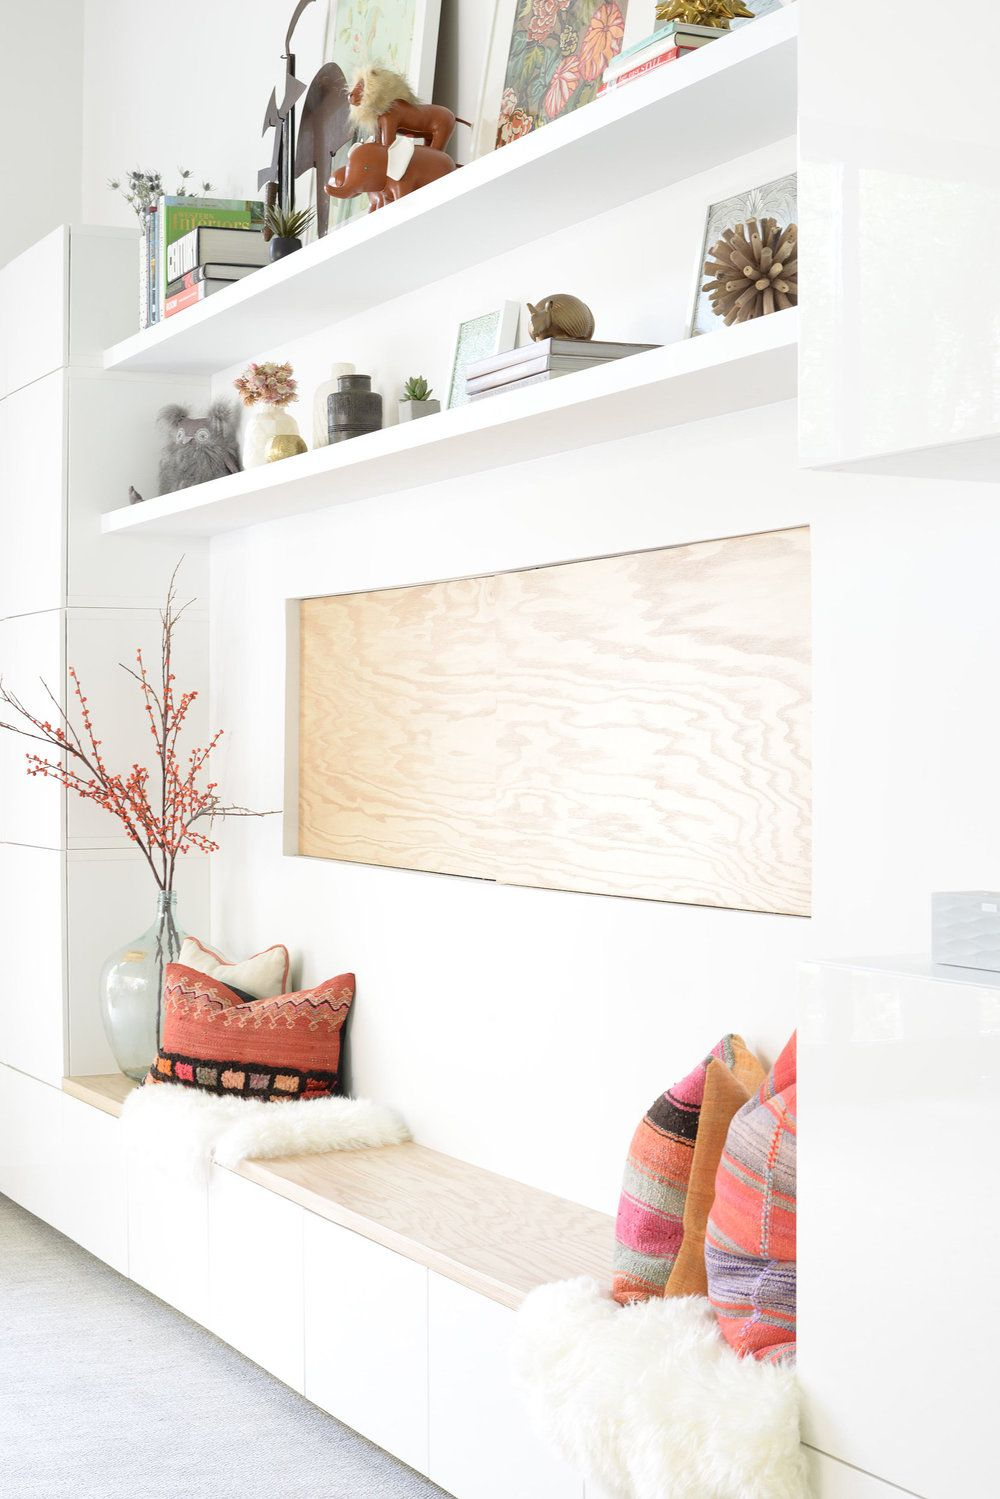 San Francisco Interior Design company Regan Baker Design RBD